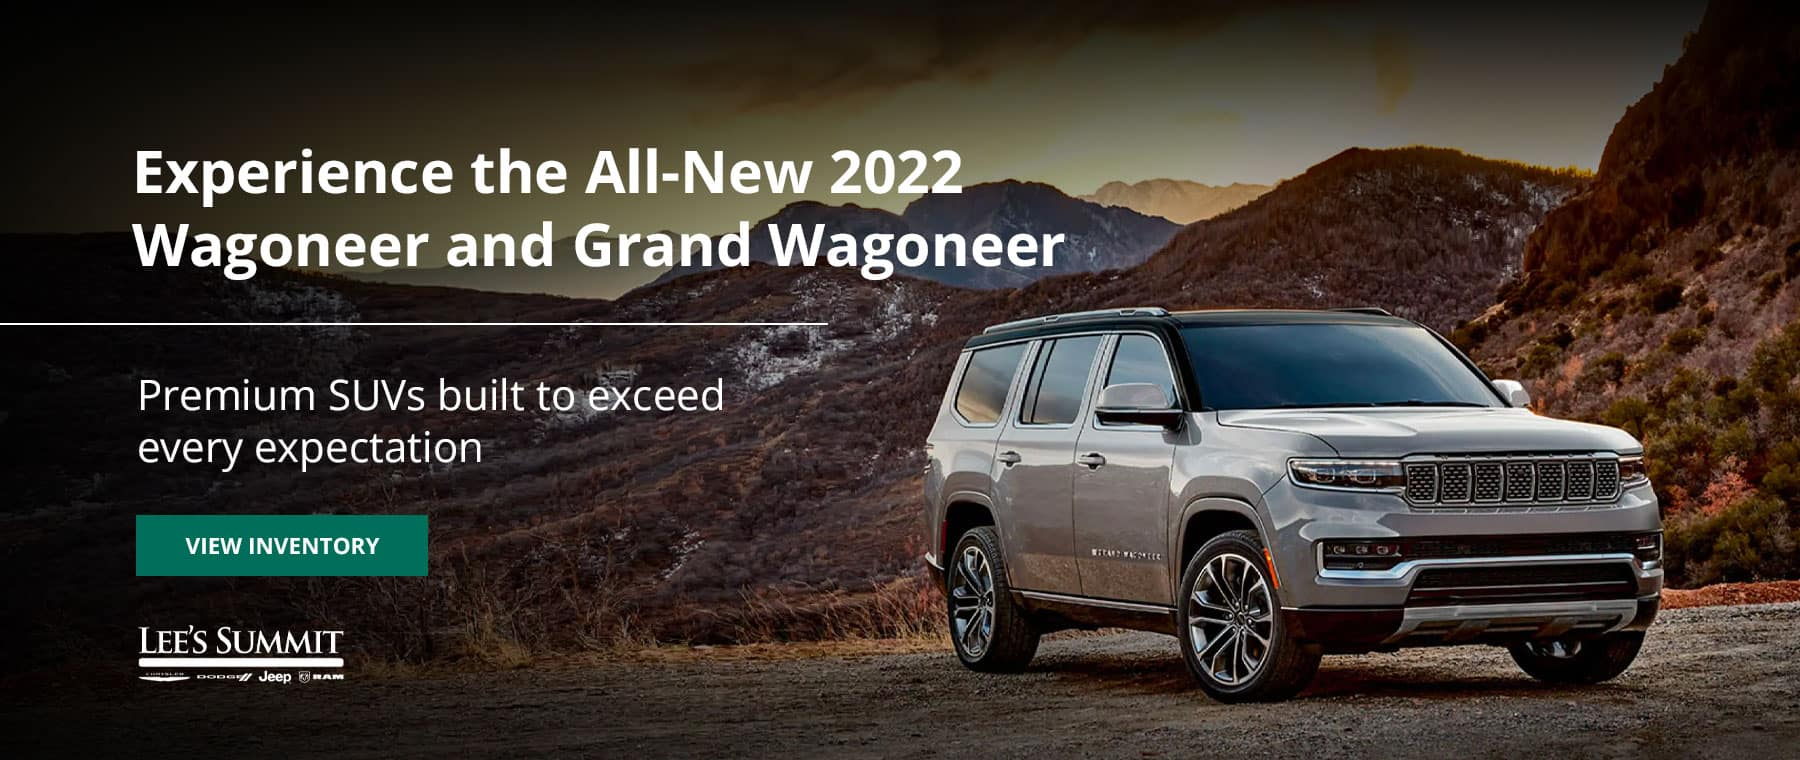 Experience the All-New 2022 Wagoneer and Grand Wagoneer. Premium SUVs built to exceed every expectation